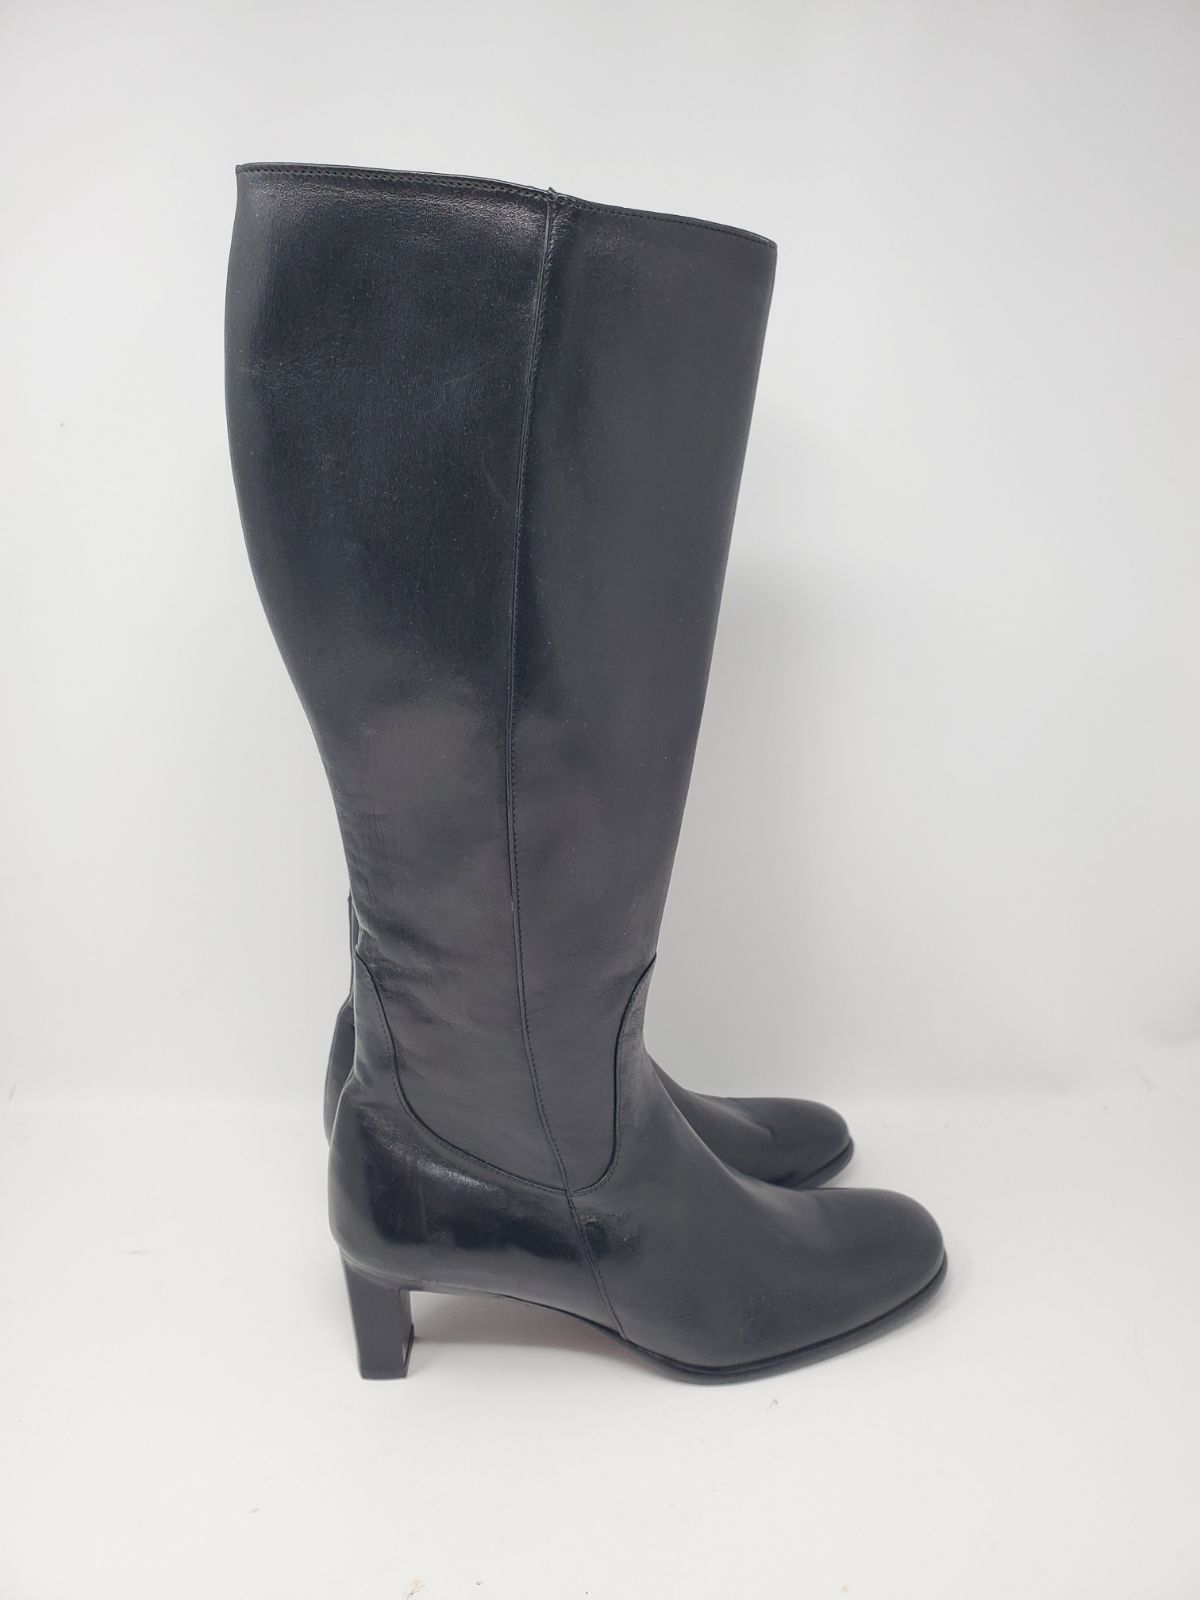 NEW $280 BEAUTIFUL ITALIAN LEATHER BOOTS